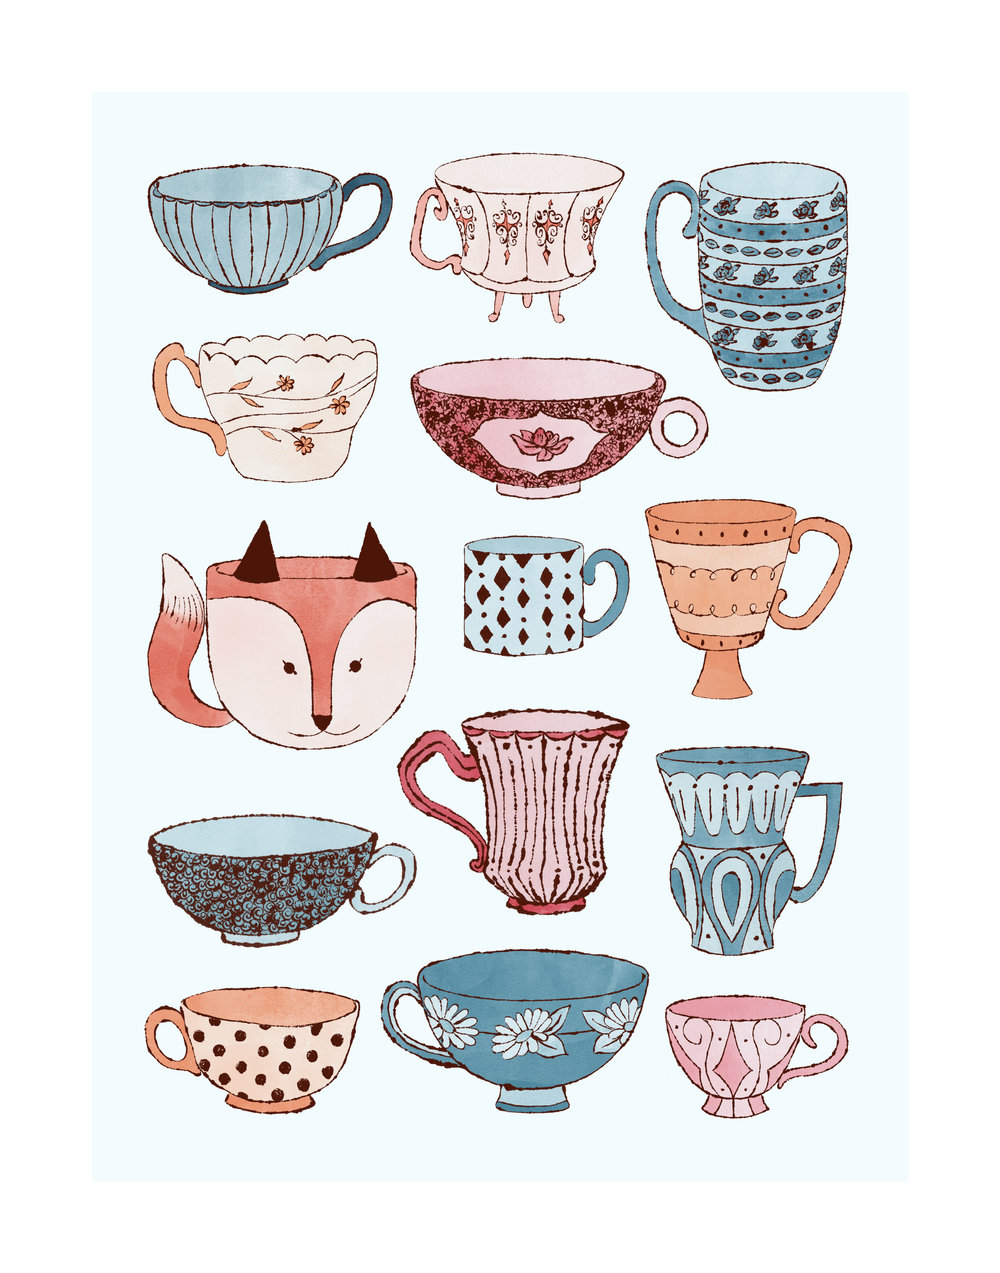 lauren_nyquist_teacups_poster.jpg